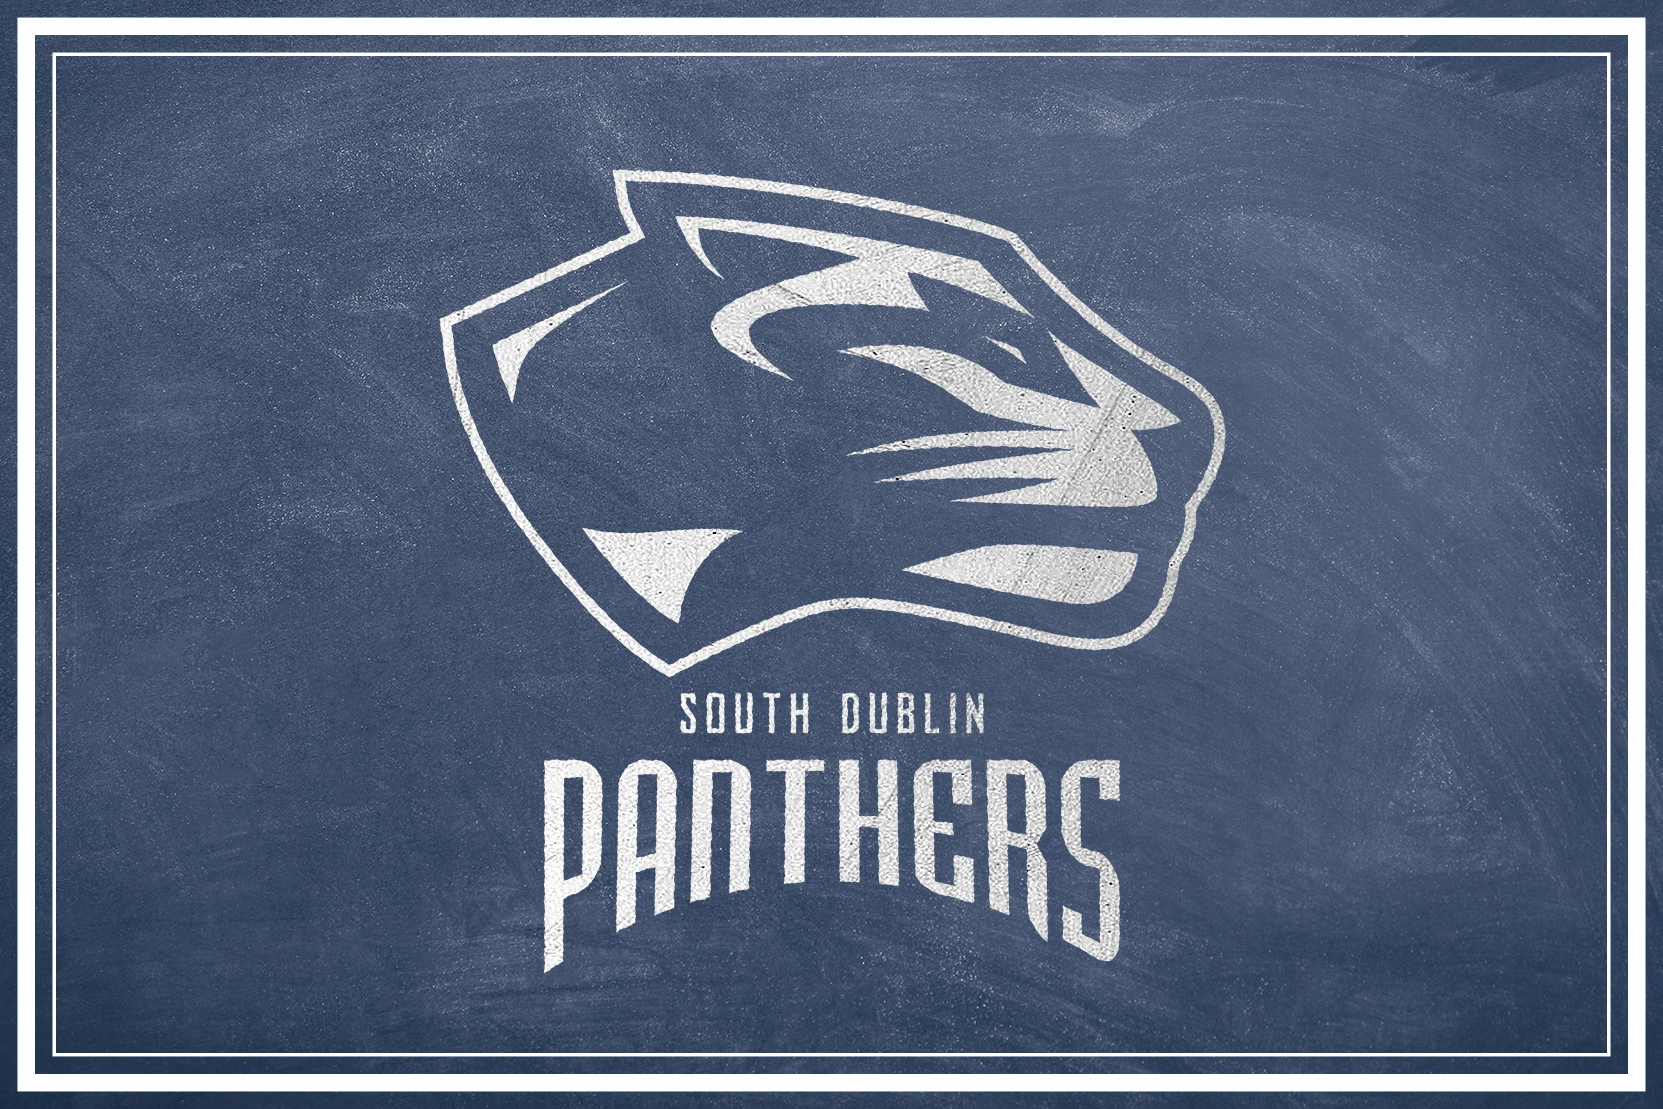 blackboard-panthers